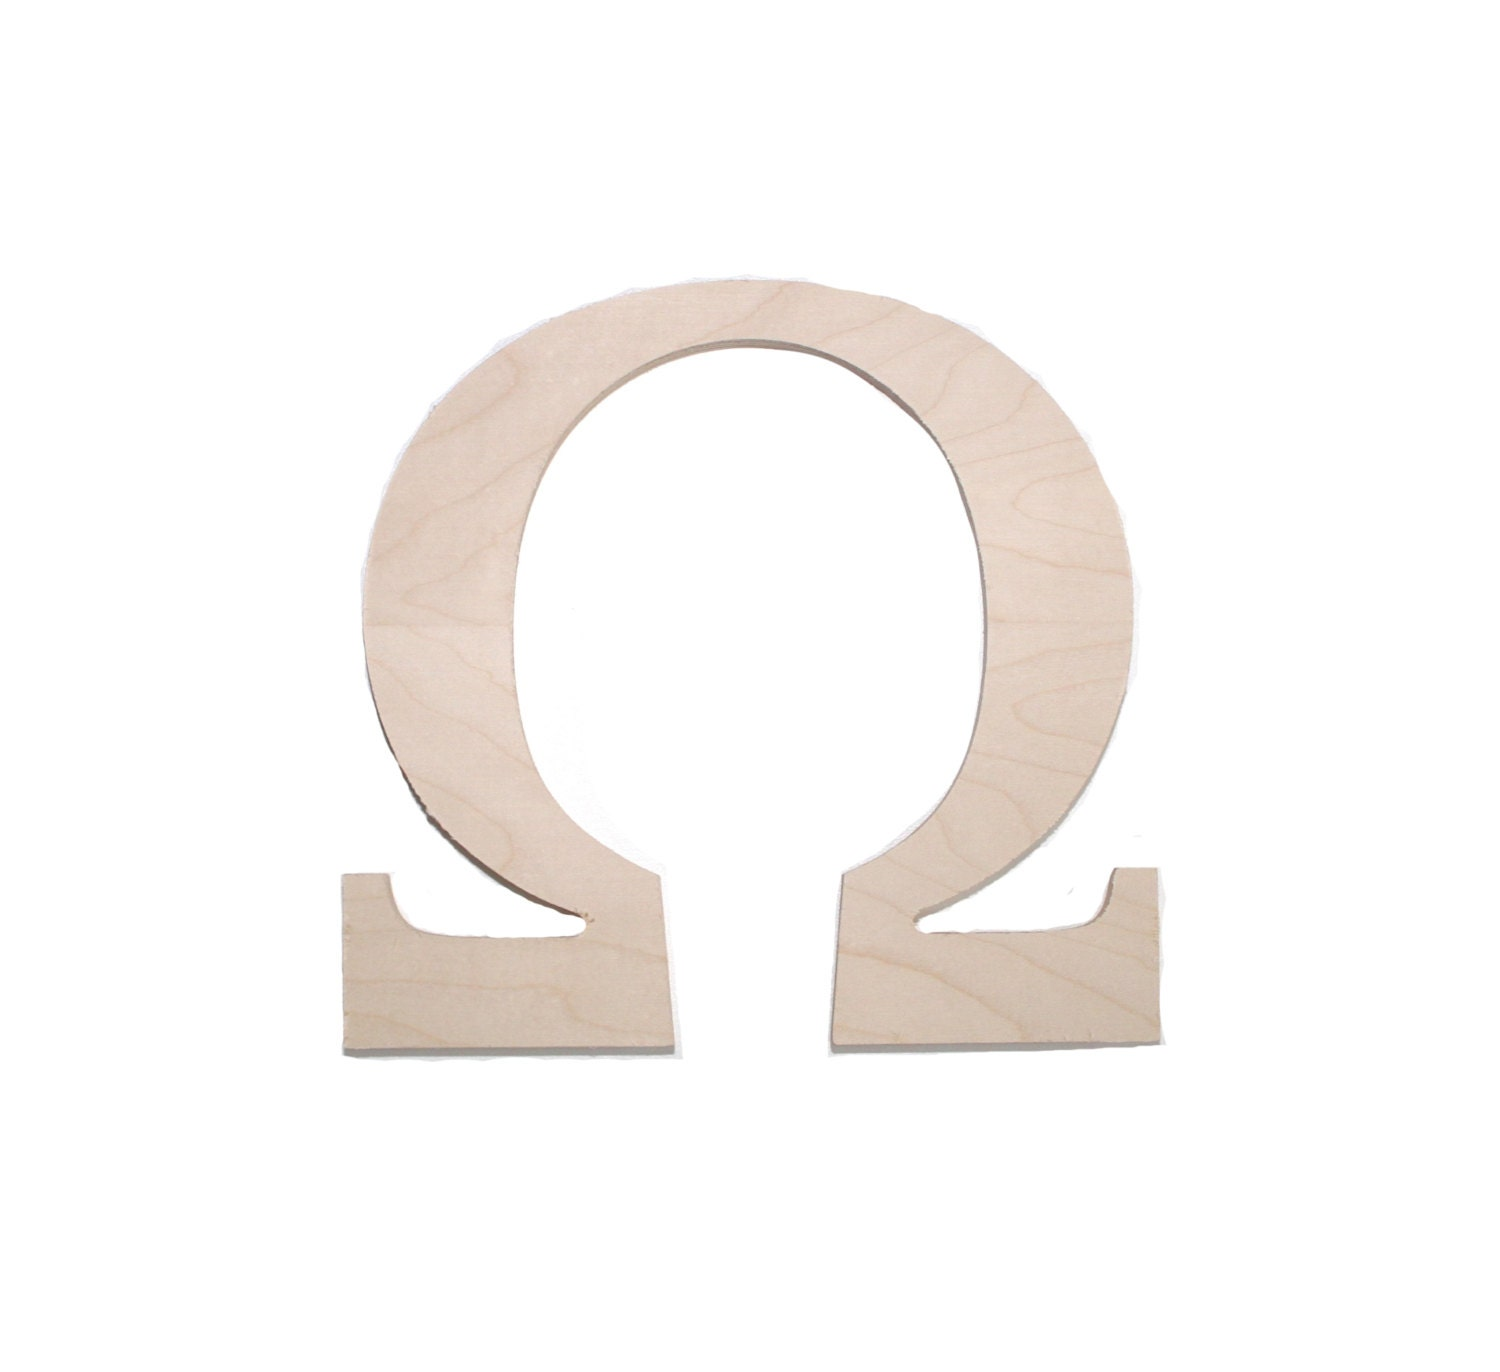 Buy Wooden Greek Letters Wooden Greek Sorority And Fraternity Letter Omega By